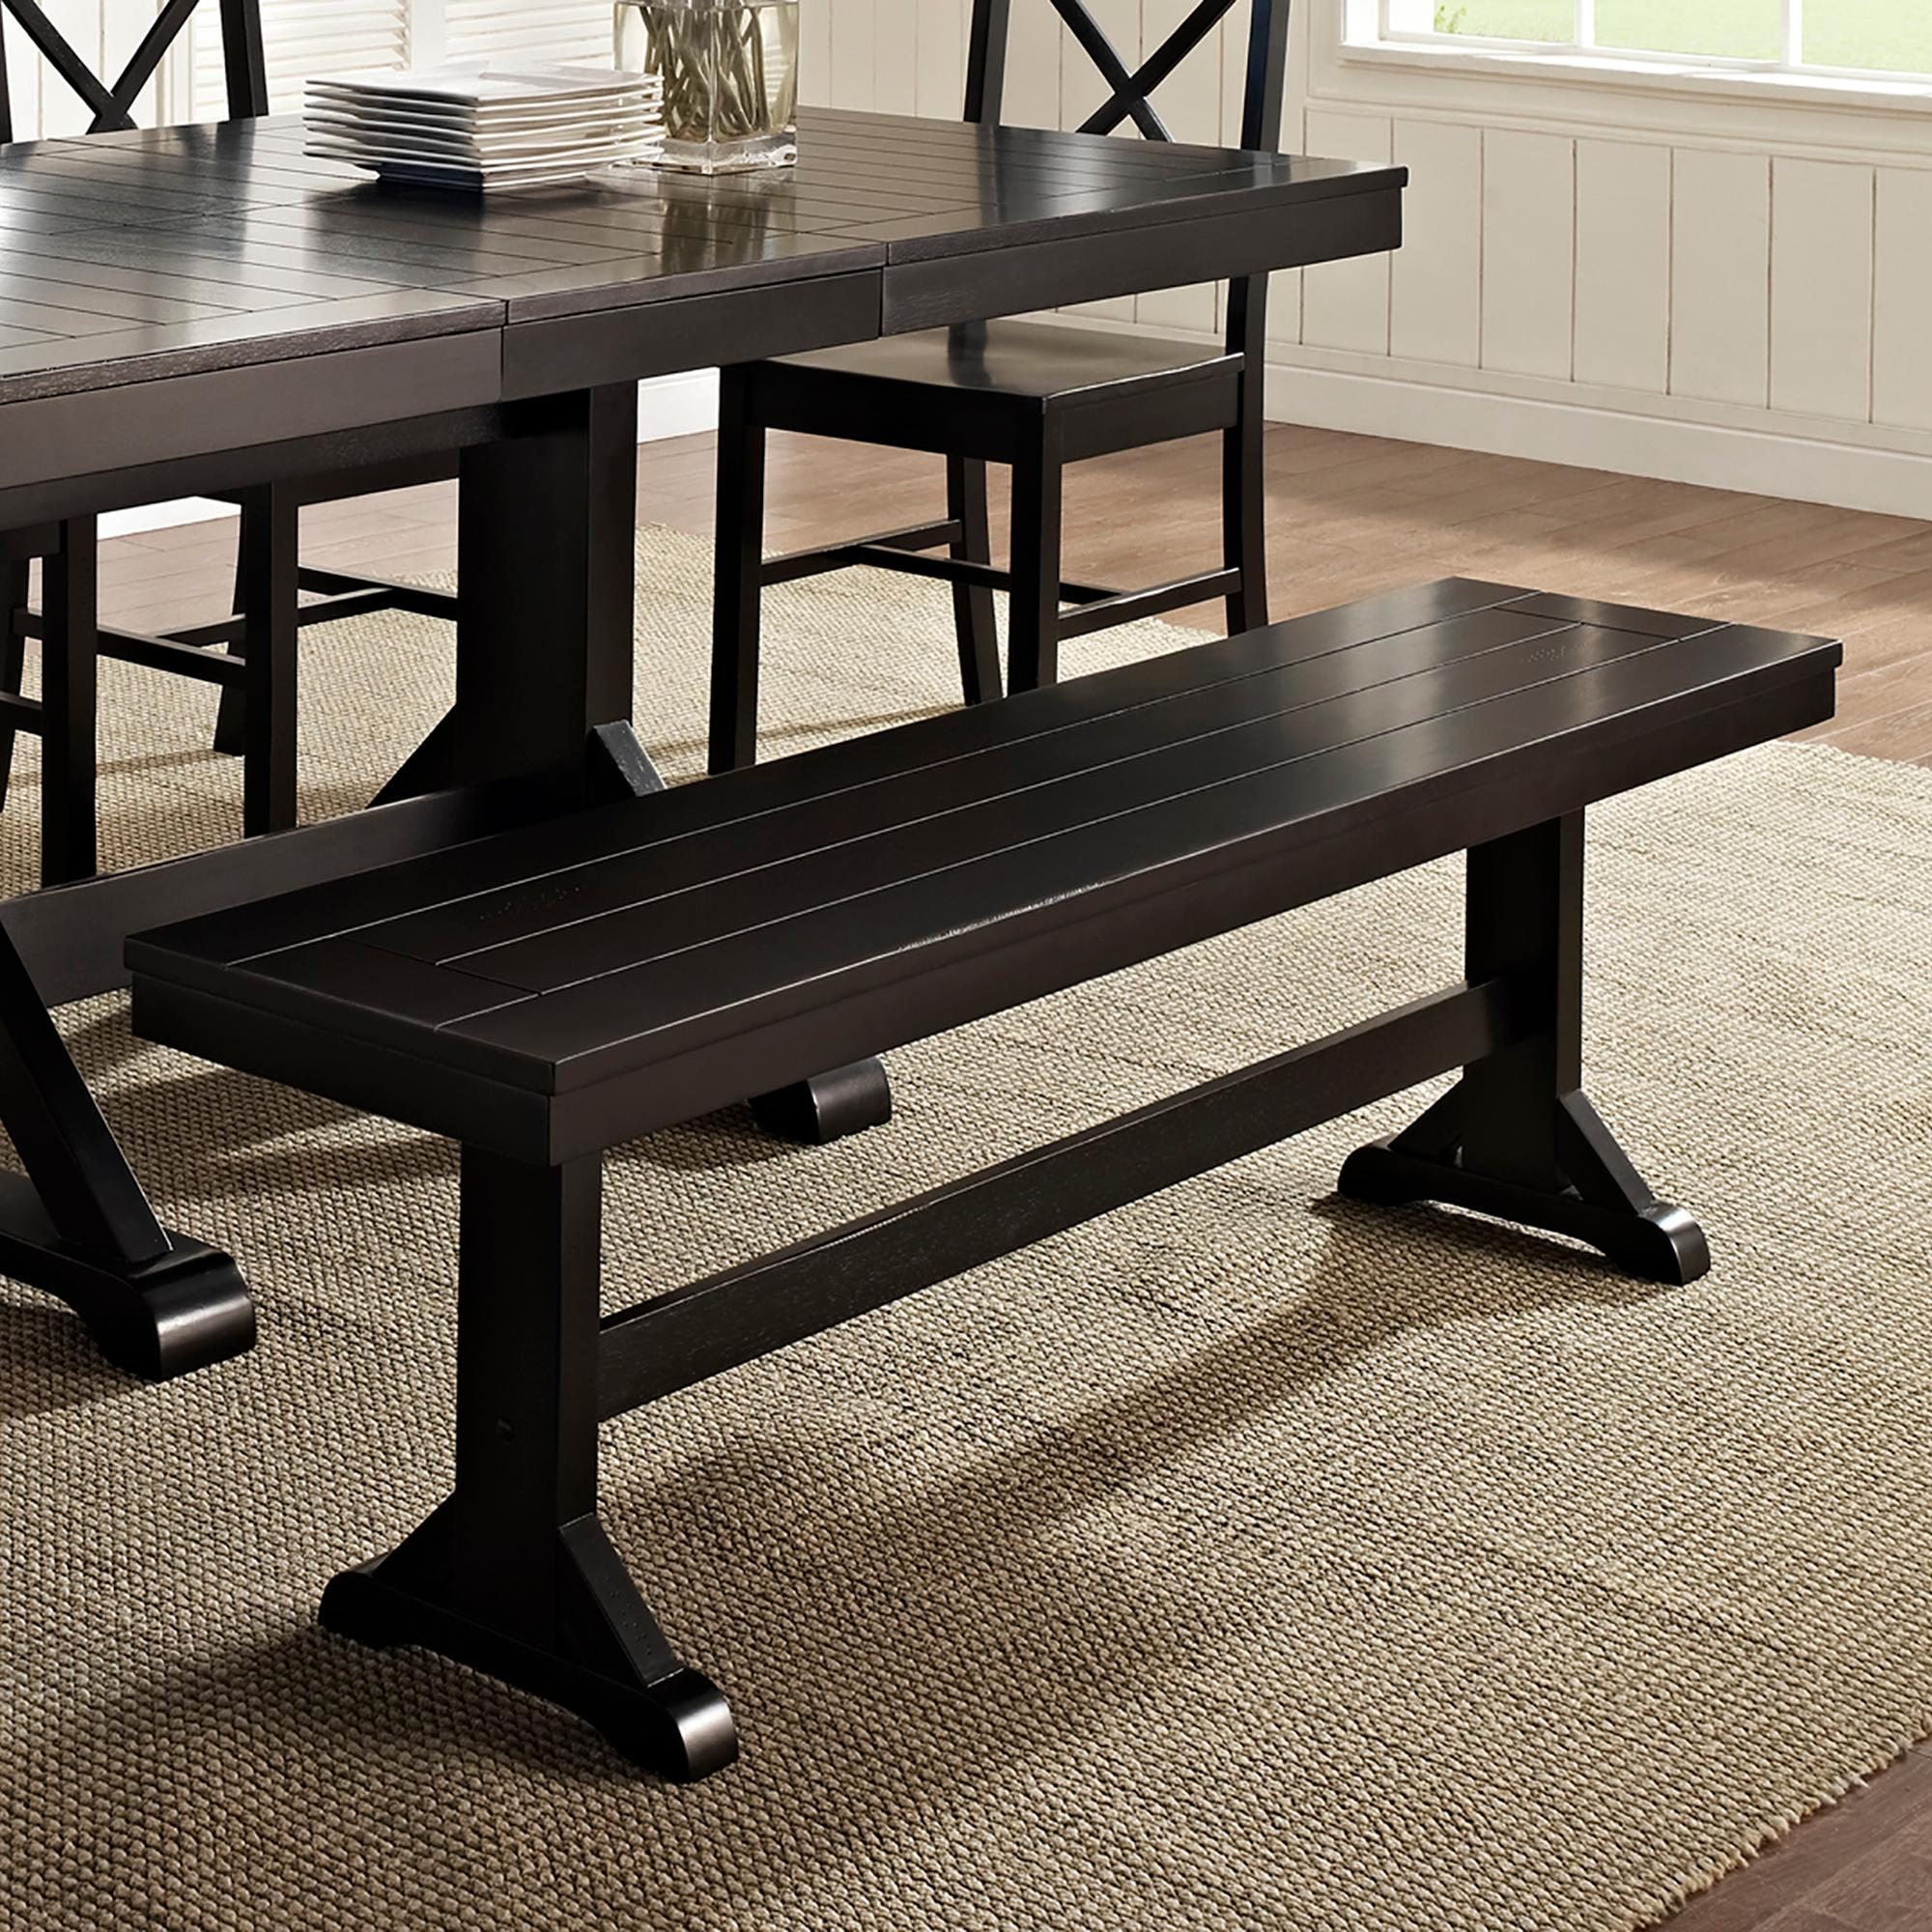 Kitchen Table With Bench: WE Furniture Solid Wood Black Dining Bench